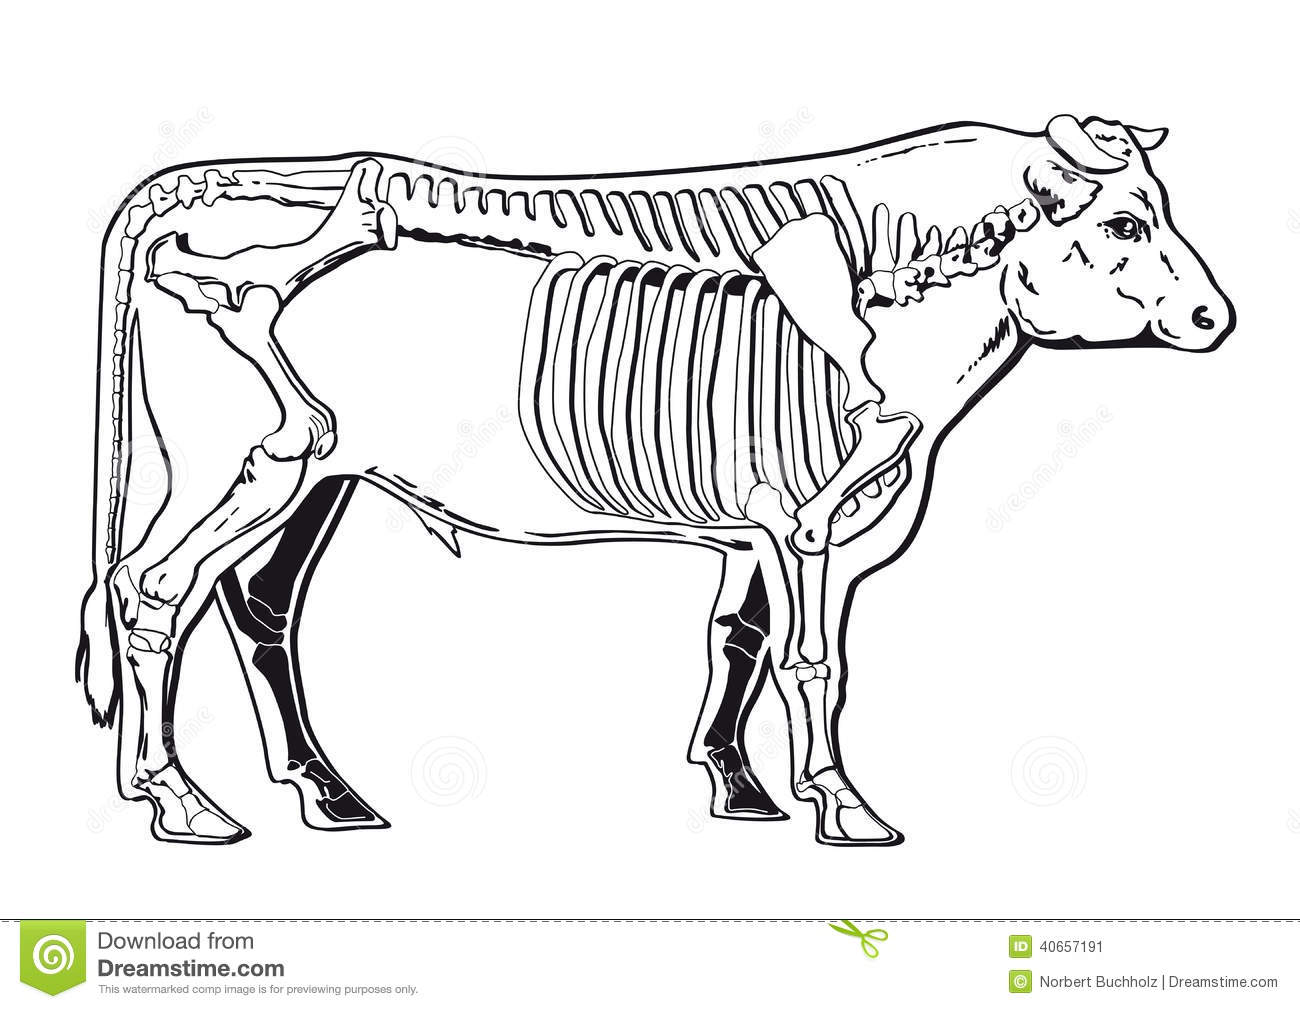 Cattle Skeleton Stock Vector Illustration Of Anatomy